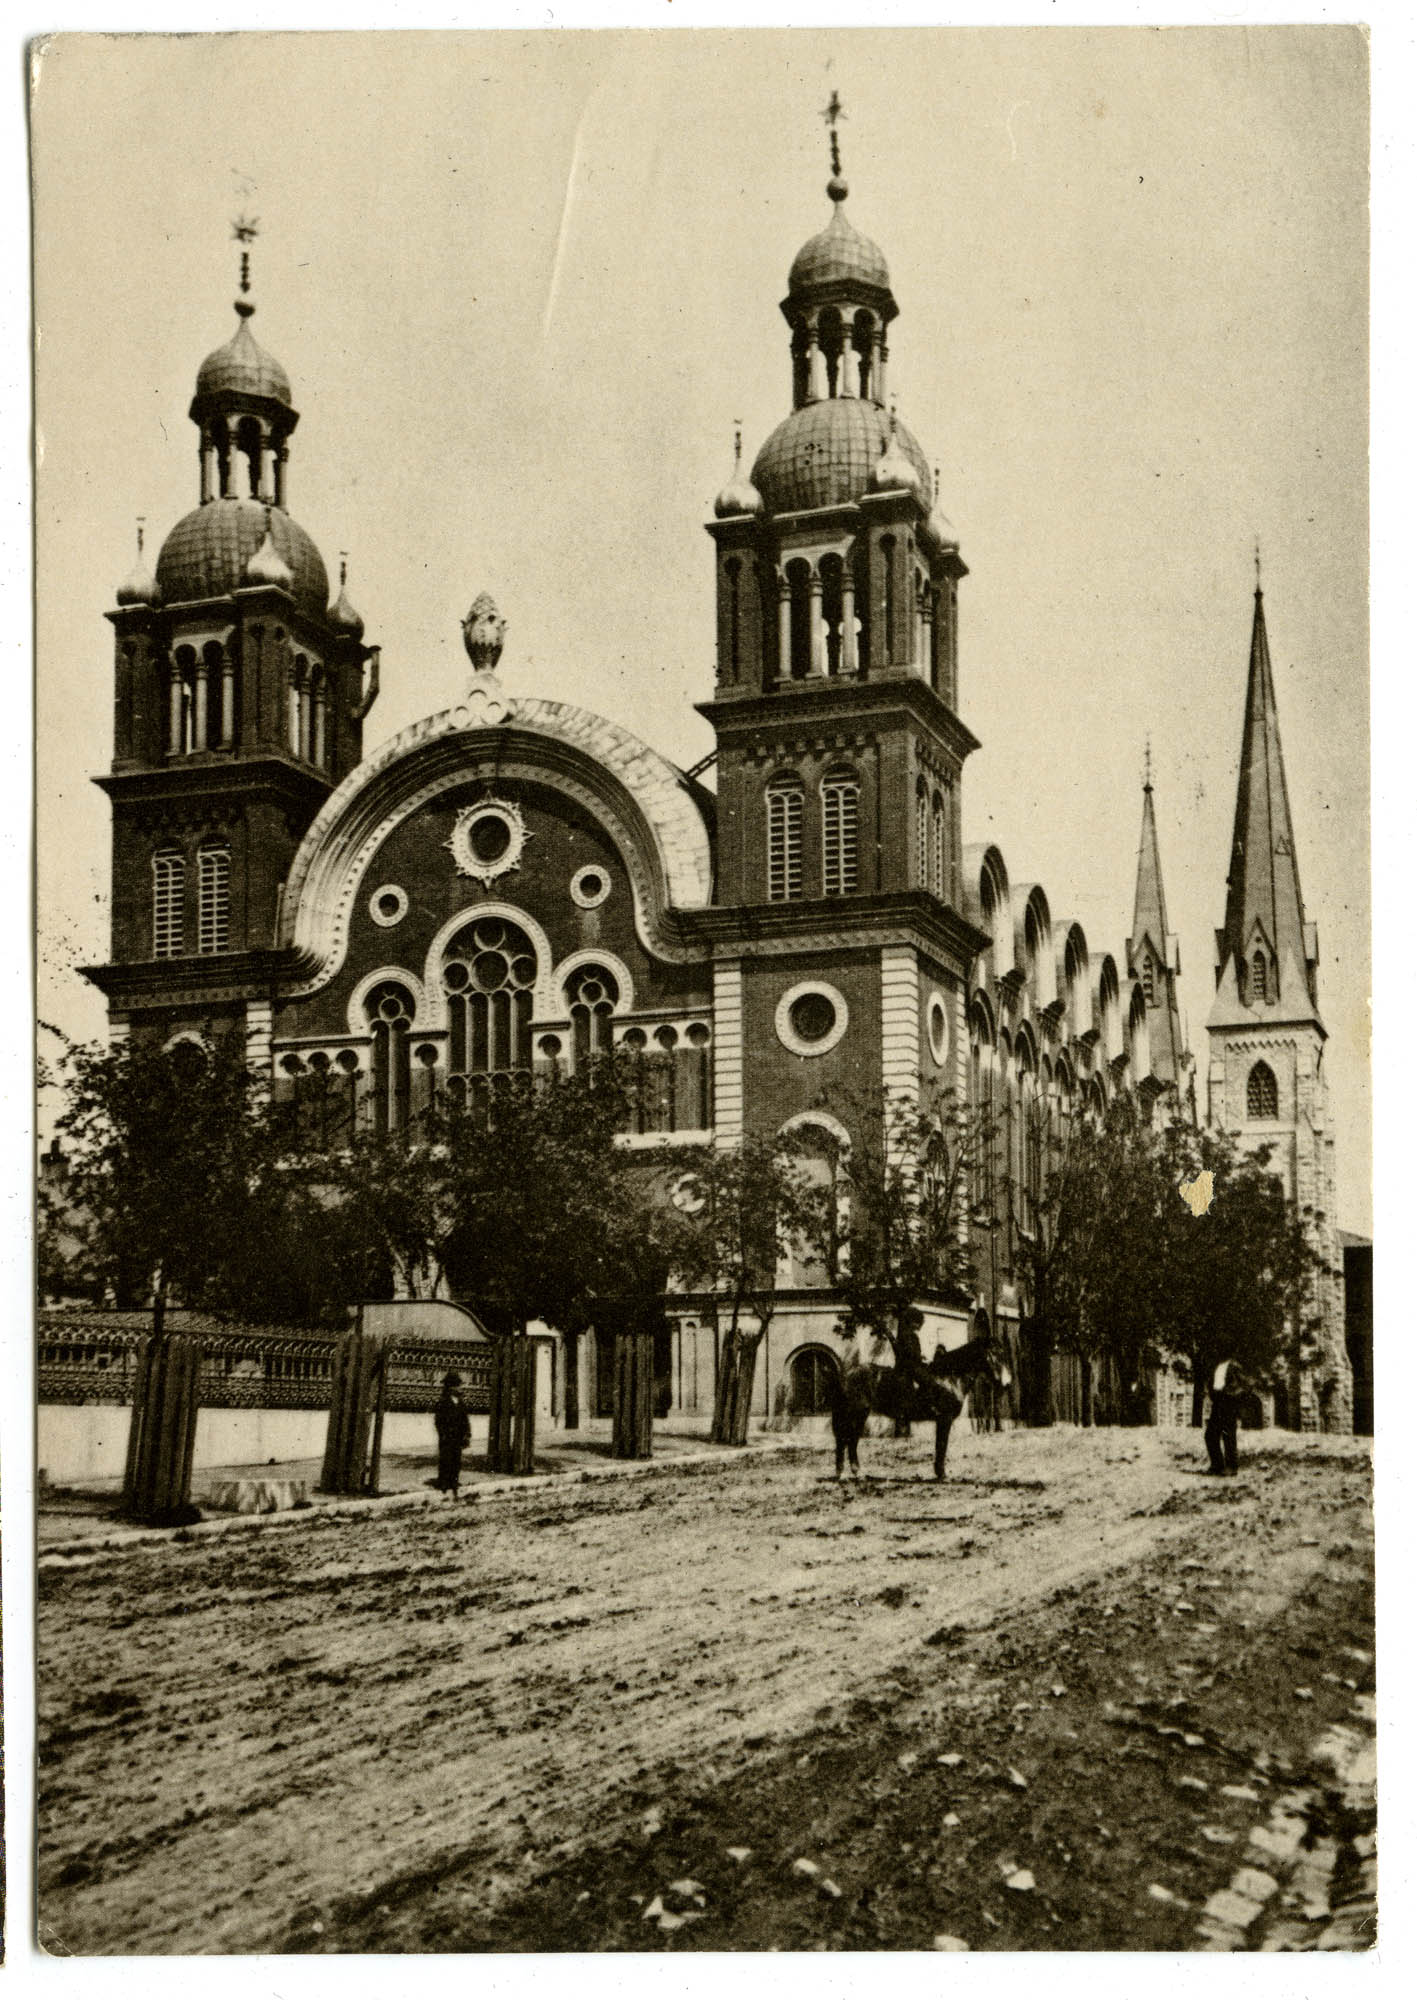 The magnificent old Temple Shaare Emeth (Gates of Truth) at 17th and Pine Sts. as it appeared in 1875.